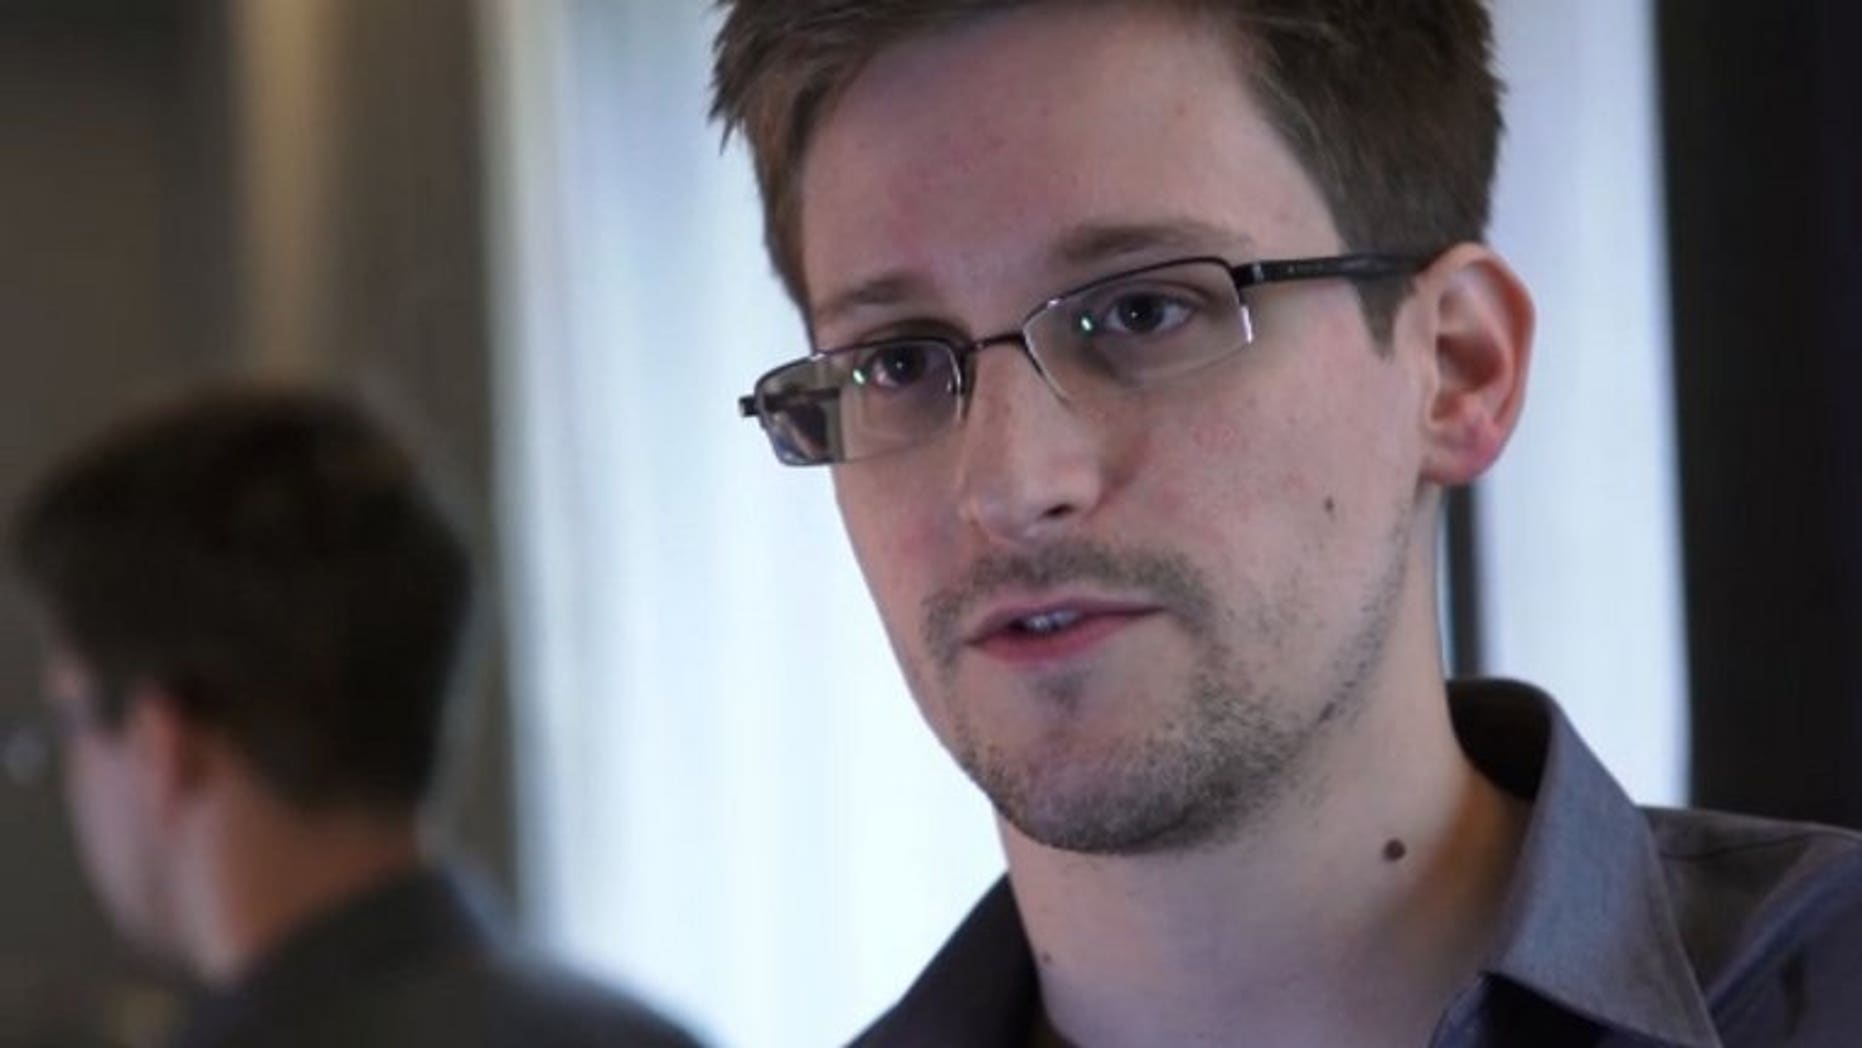 Edward Snowden speaks during an interview with The Guardian newspaper at an undisclosed location in Hong Kong on June 6, 2013. US intelligence leaker Edward Snowden has applied to another six countries for asylum, WikiLeaks said on its Twitter feed.